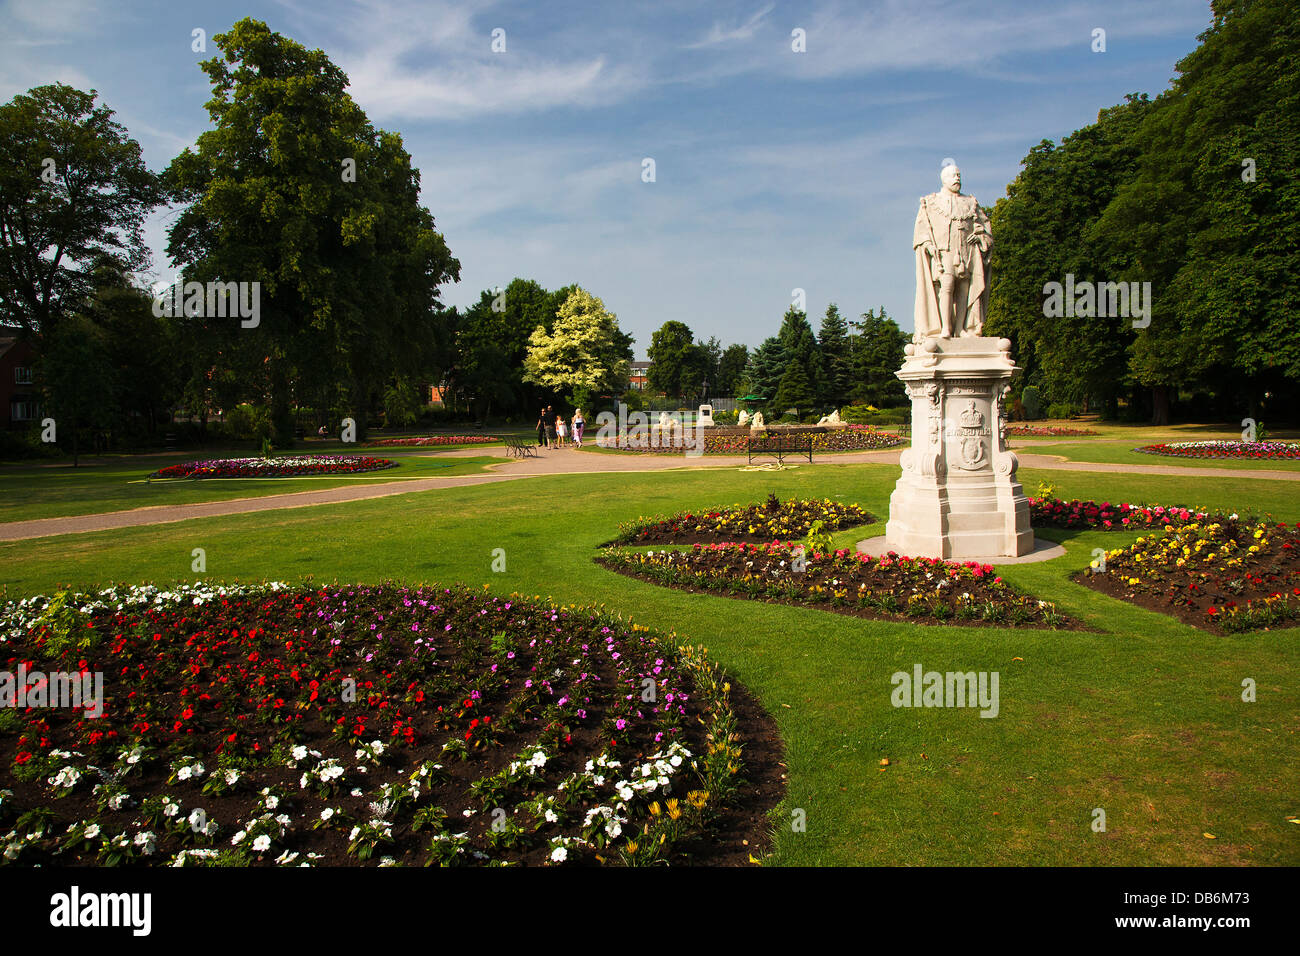 Beacon Park with statue of King Edward VII, Lichfield, Staffordshire, England, UK - Stock Image